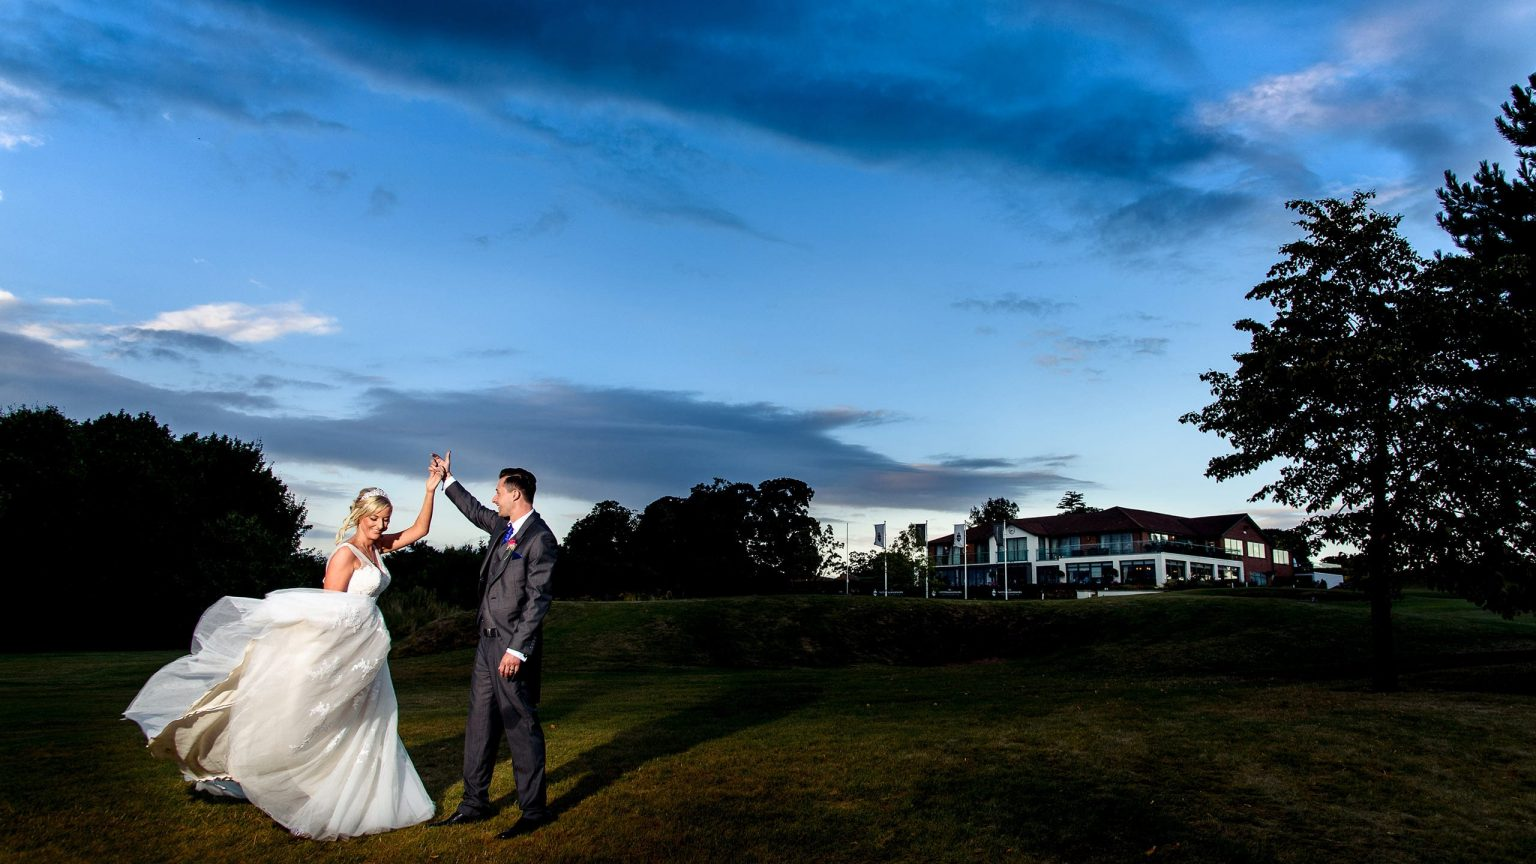 Bride & groom wedding photo at The Nottinghamshire Golf & Country Club